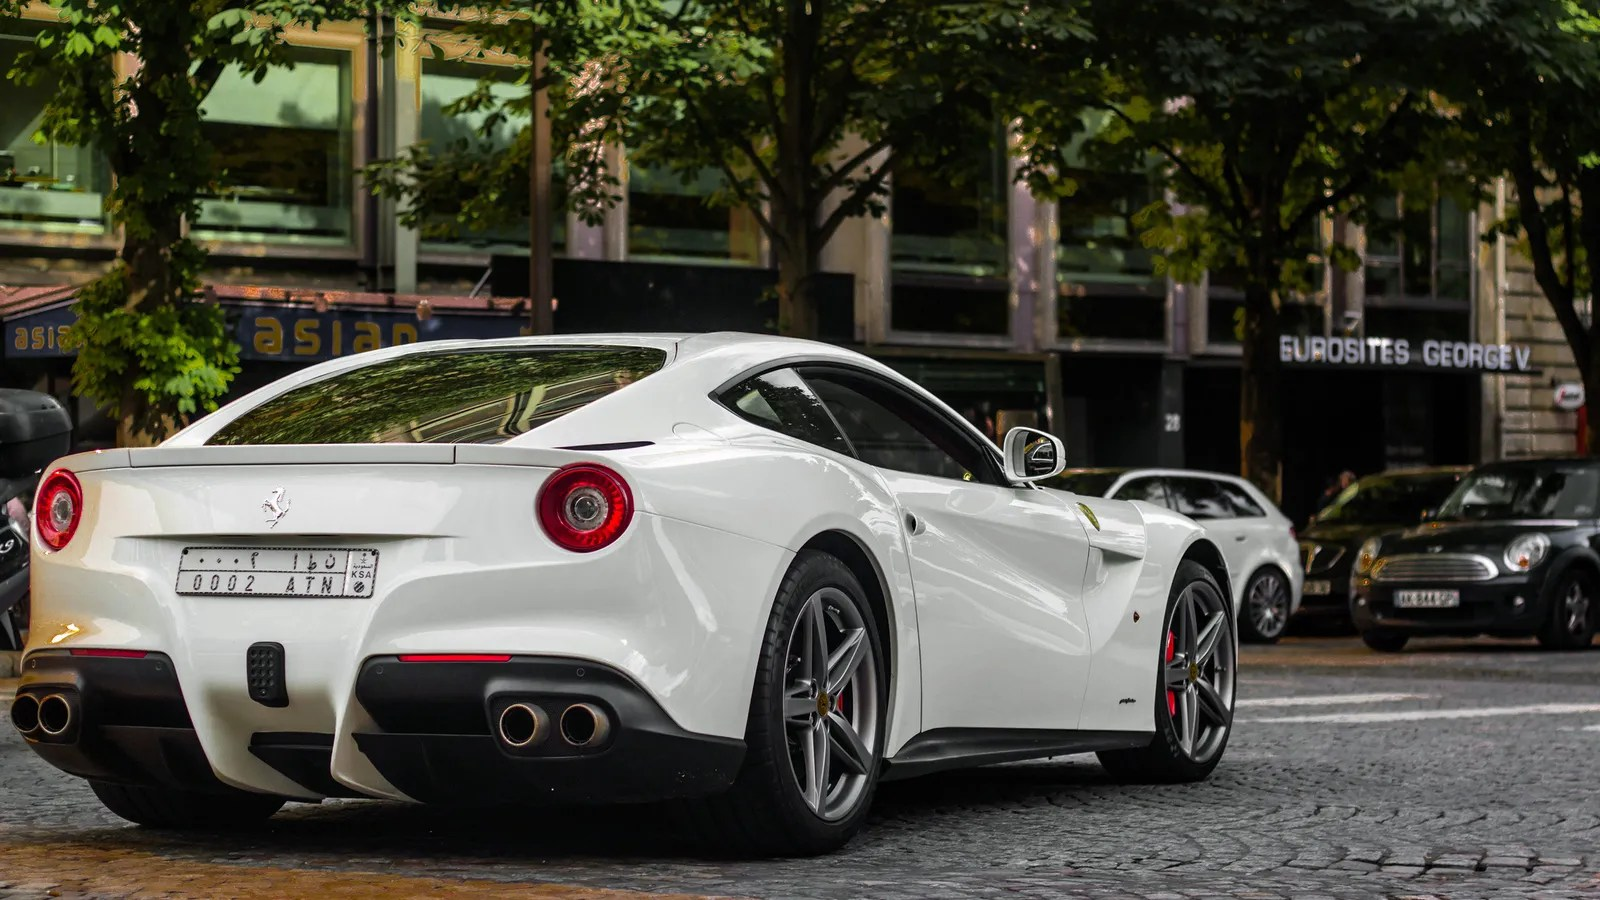 Racing Car Wallpaper 1080p All The Reasons Why Ferrari Should Keep Making The F12 Forever